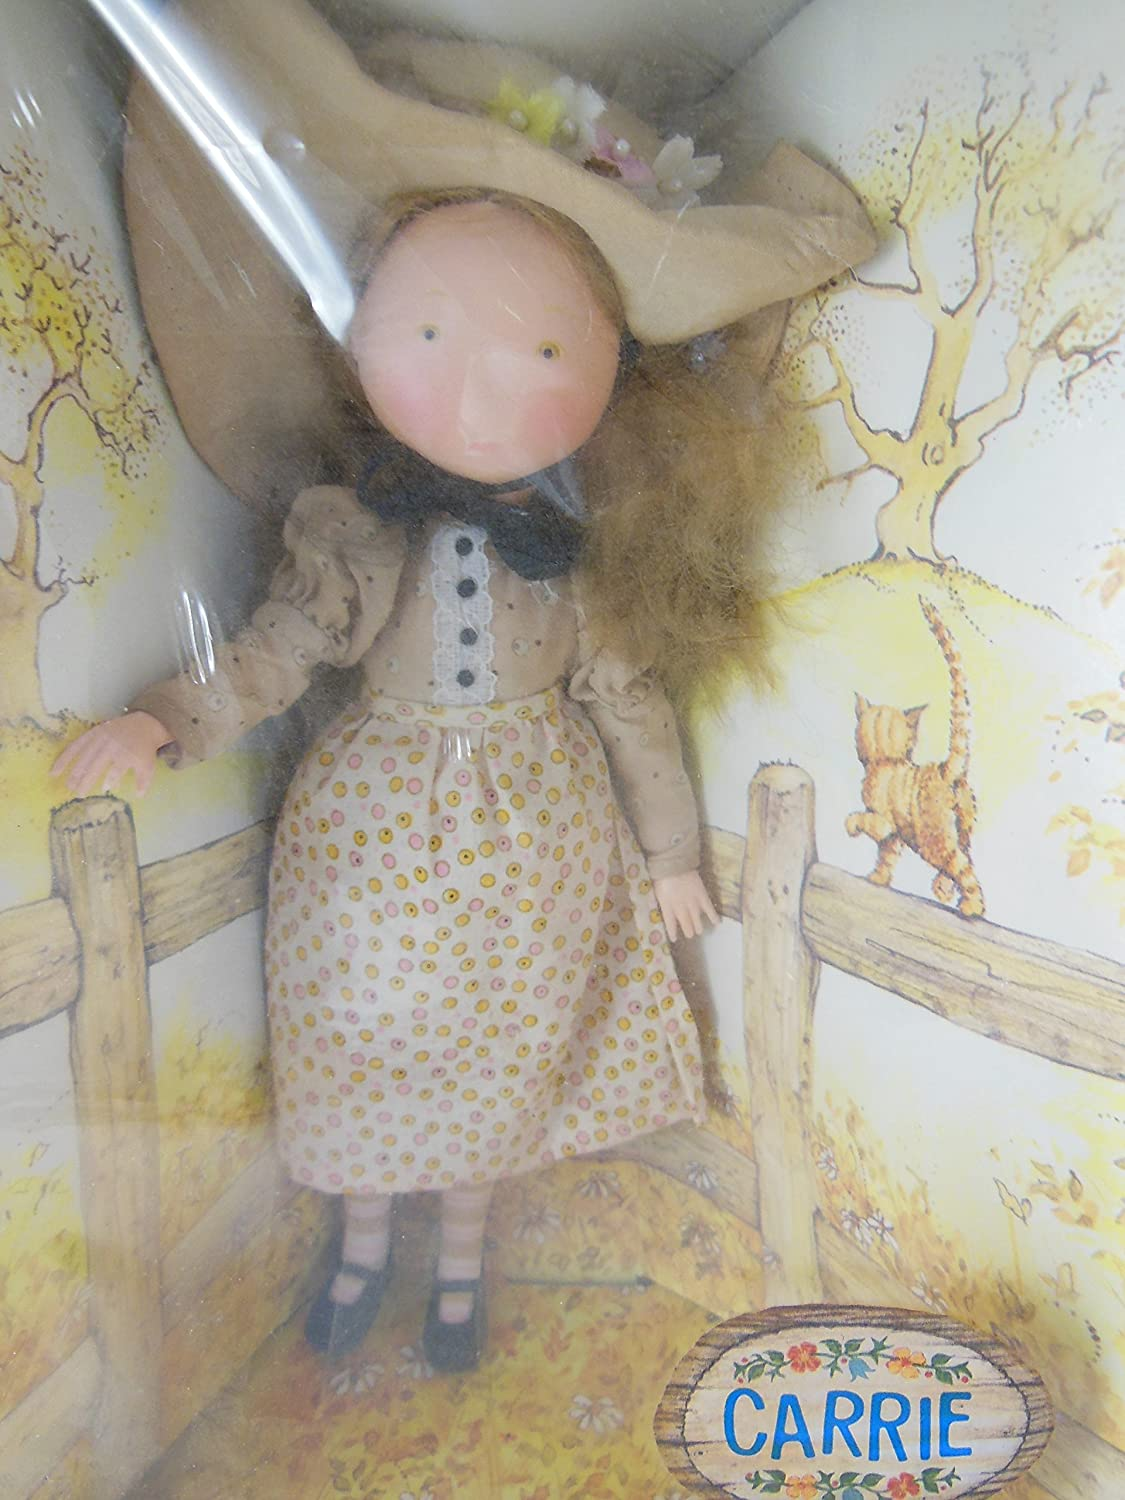 """Vintage Holly Hobbie Carrie人形11 """" New In Factory Sealedボックスポーズ自在Fully Jointed、Rootedヘア、サーフェスWashable   B07B7932WR"""